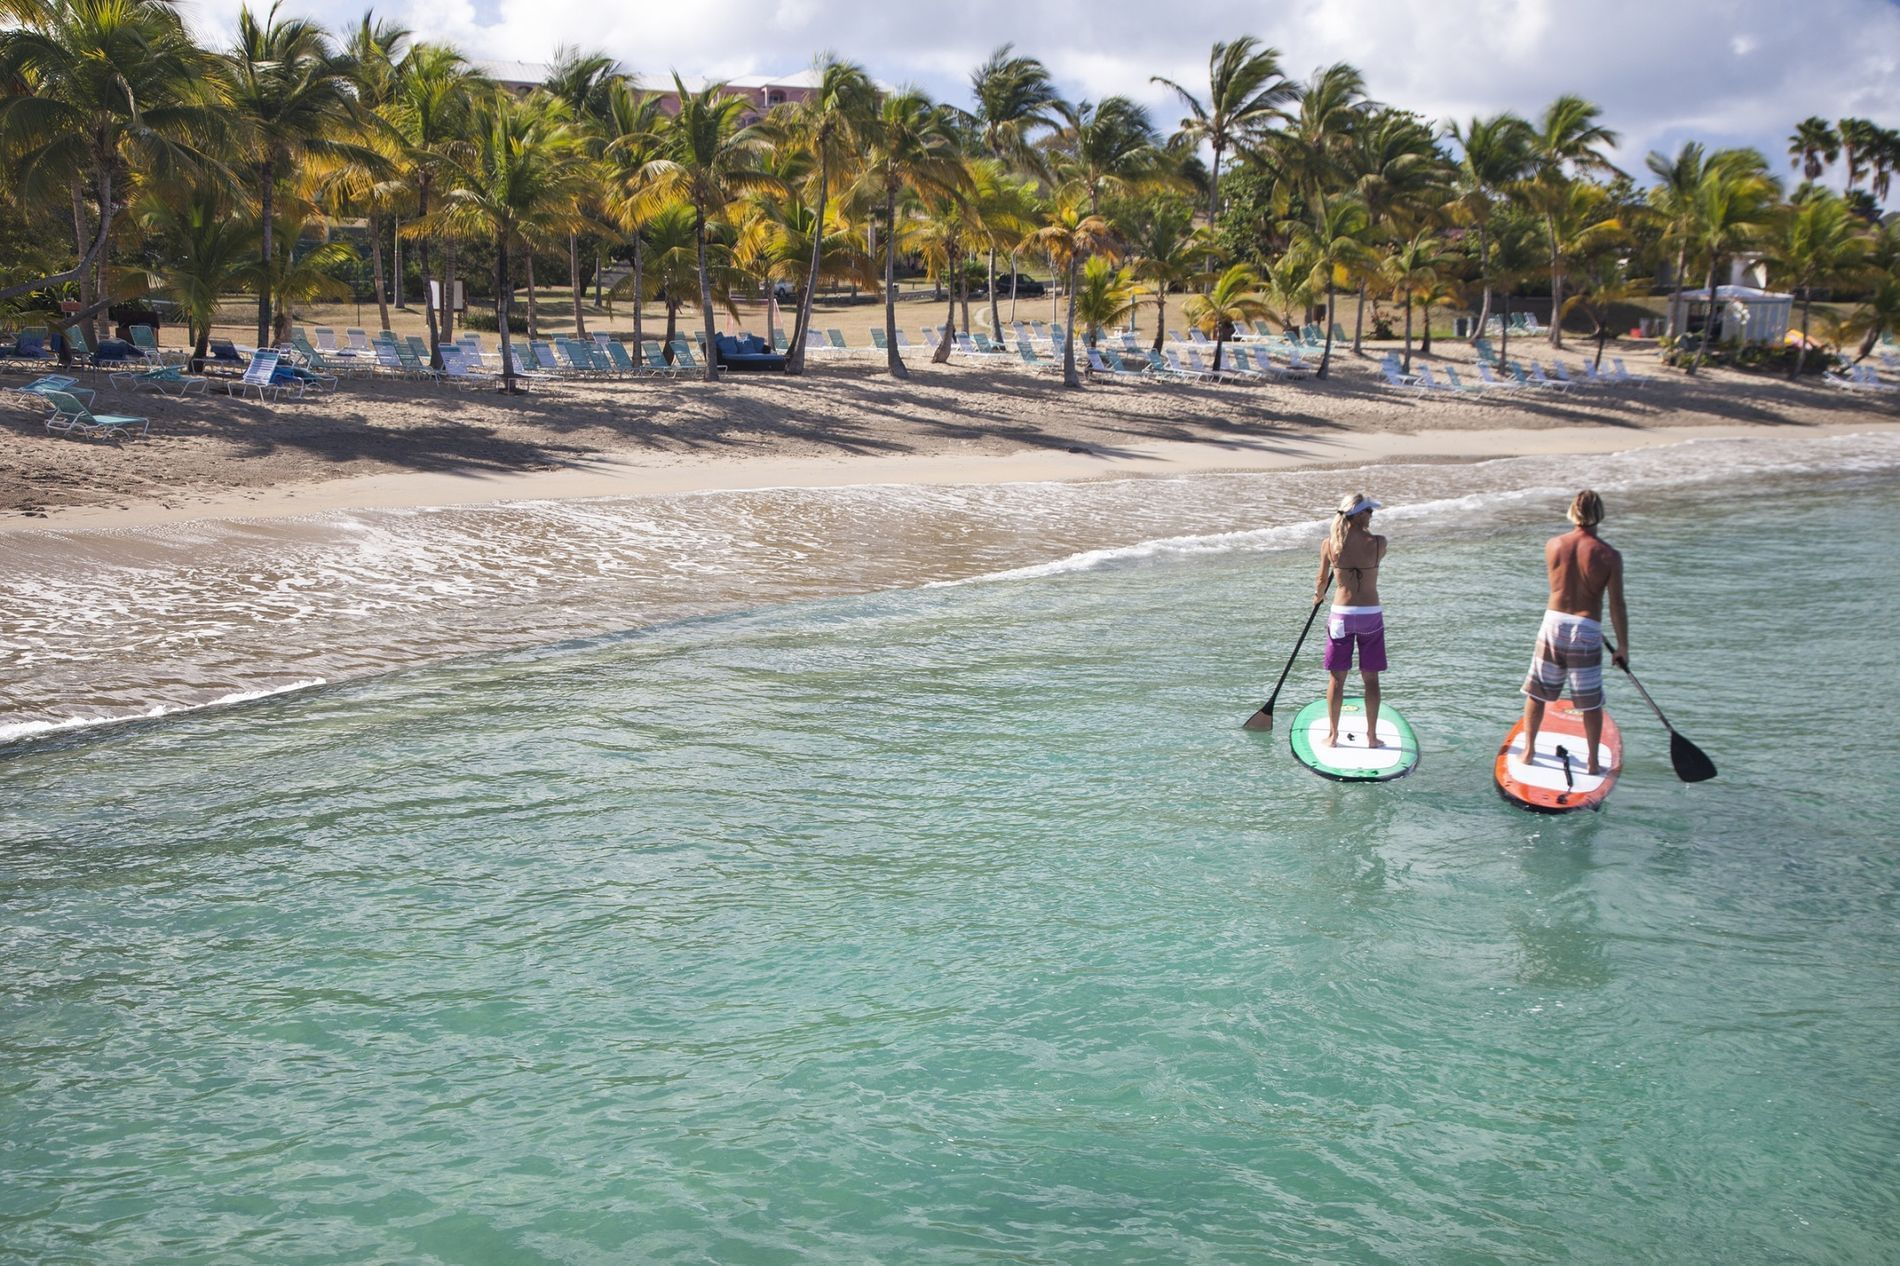 Pair of Stand Up Paddle Boarders